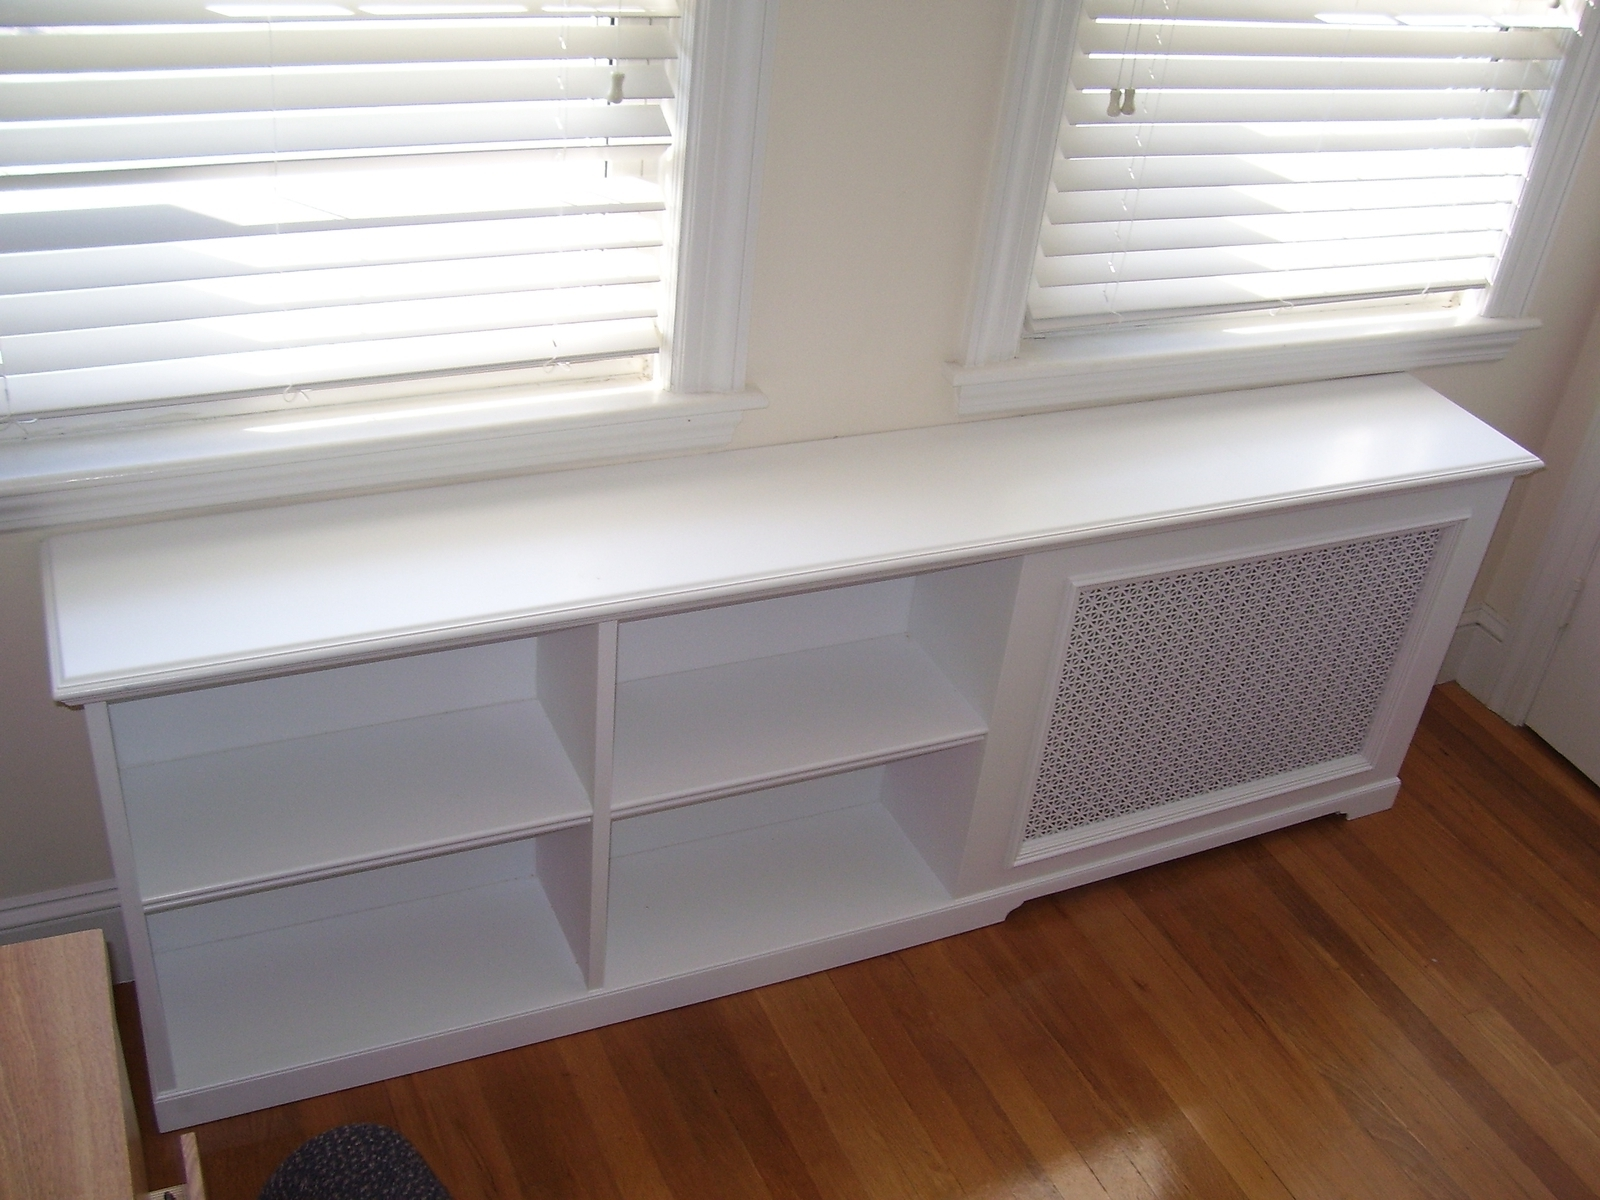 Radiator Cover Shelf Unit Regarding Current Custom Radiator Covers (View 8 of 15)